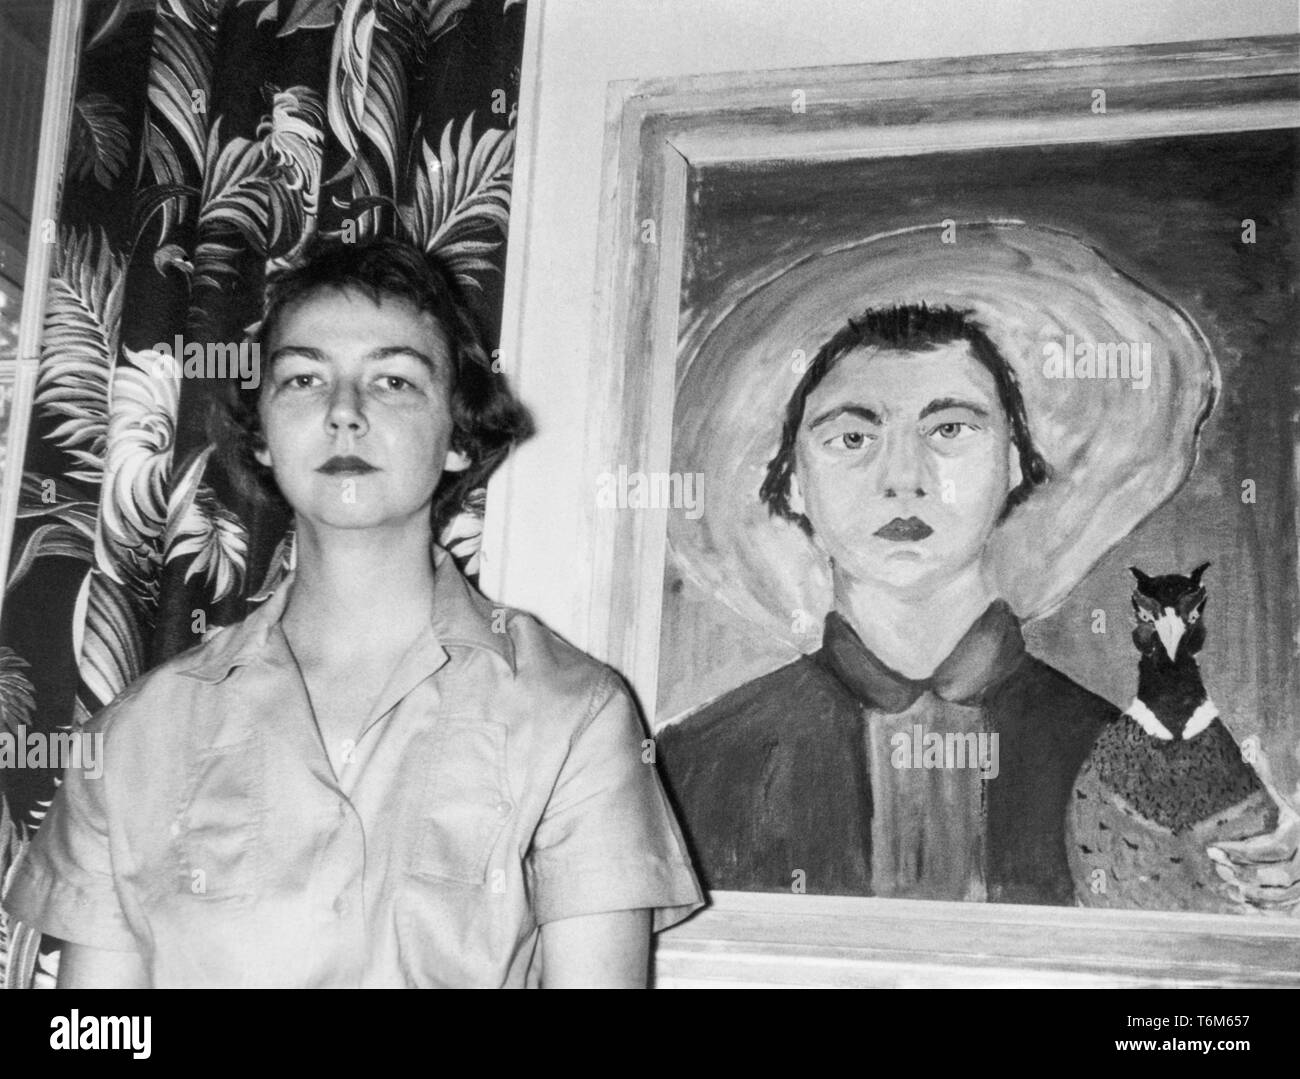 Flannery O'Connor (1925-1964), Southern Gothic novelist and short story writer, standing next to a 1953 self portrait where the author is holding a pheasant. - Stock Image